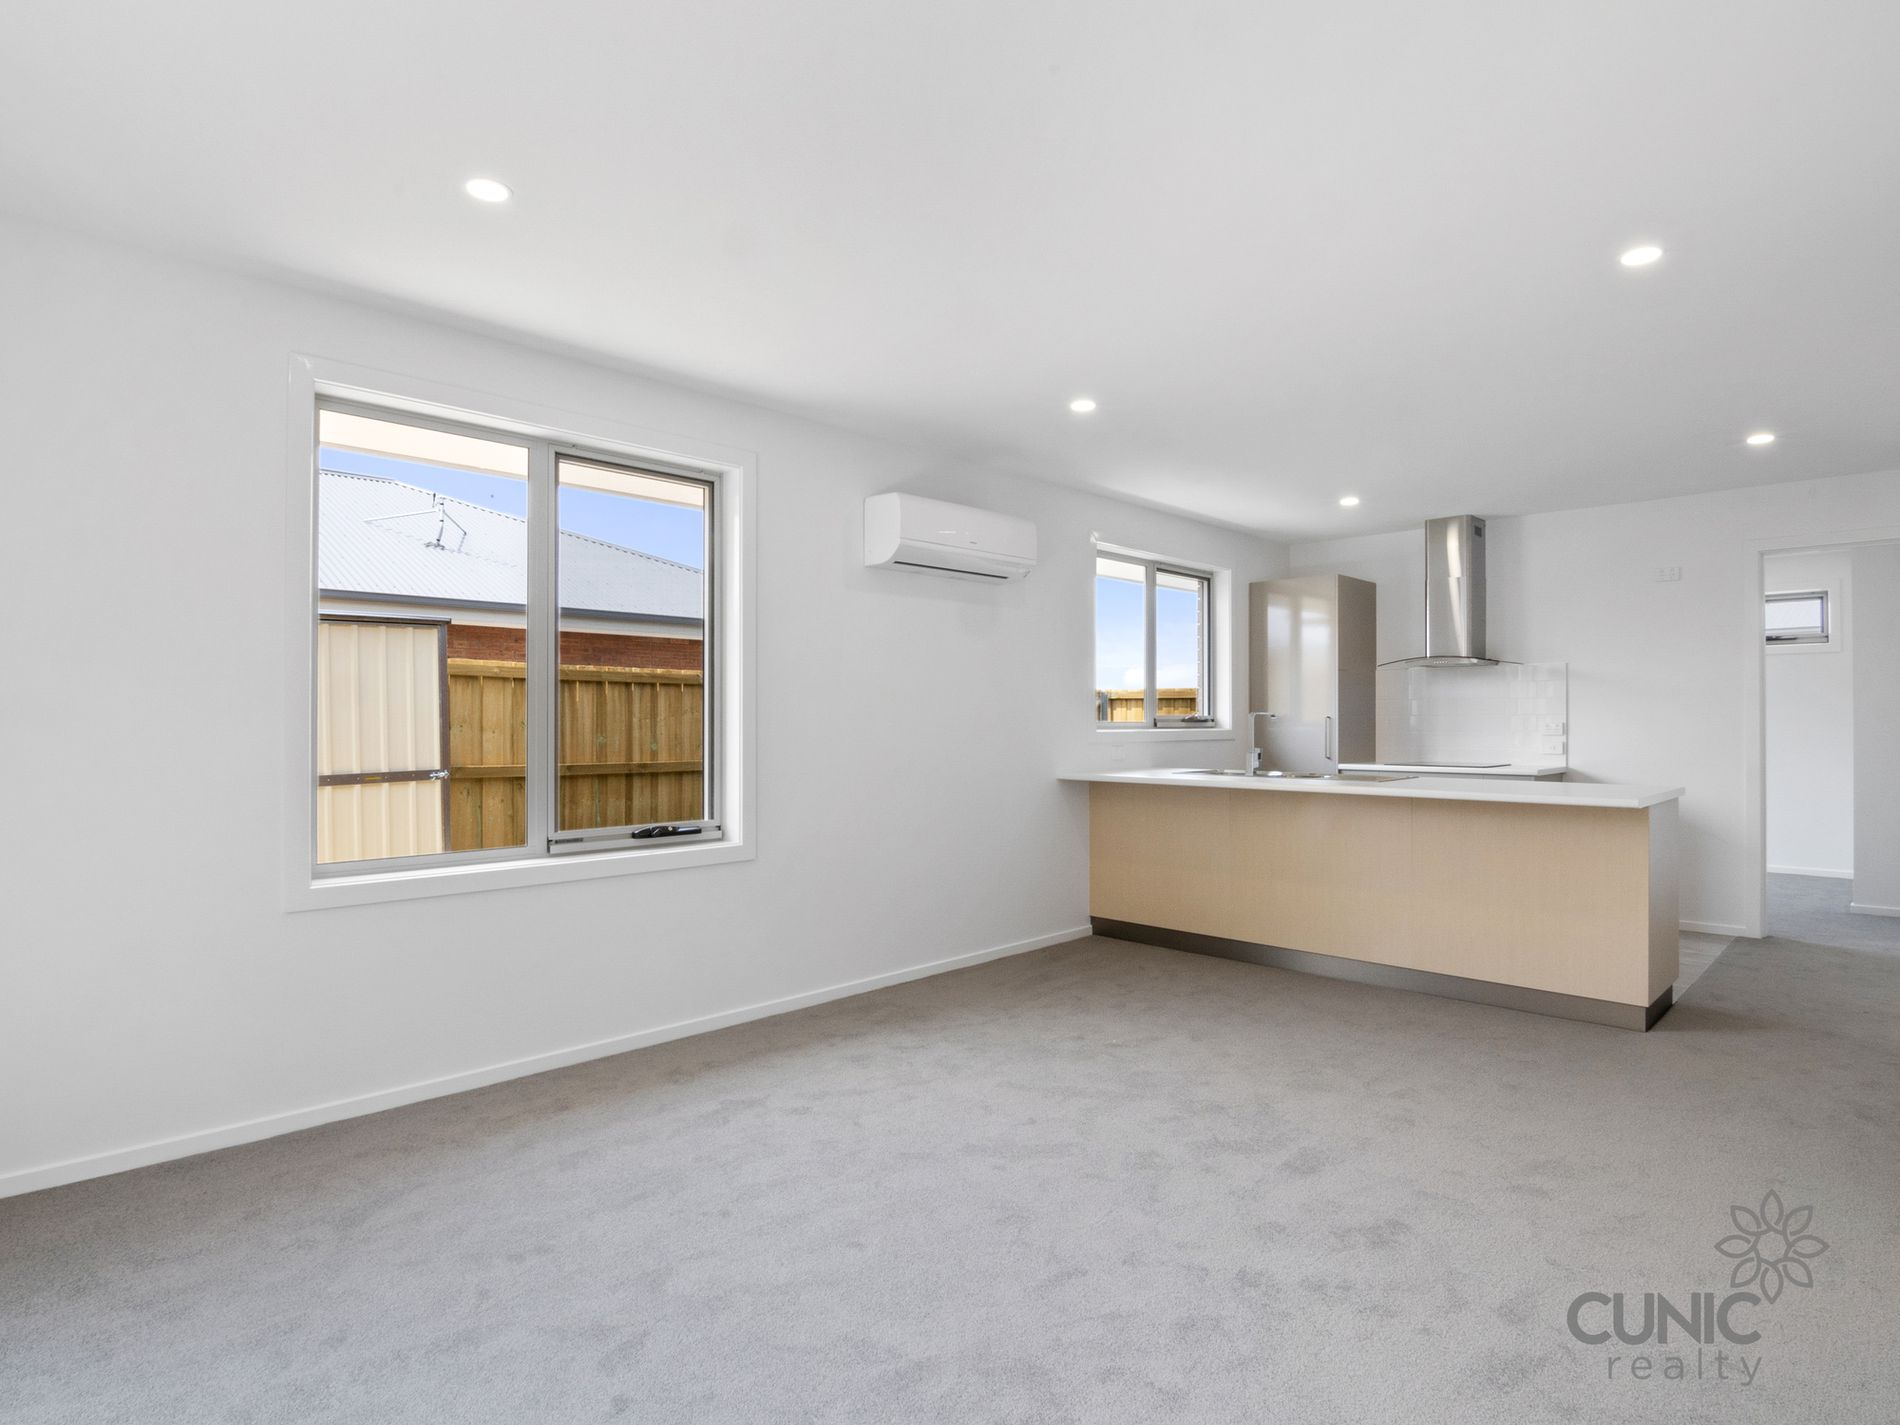 23 / 6 Dubs Drive and Co Drive, Sorell